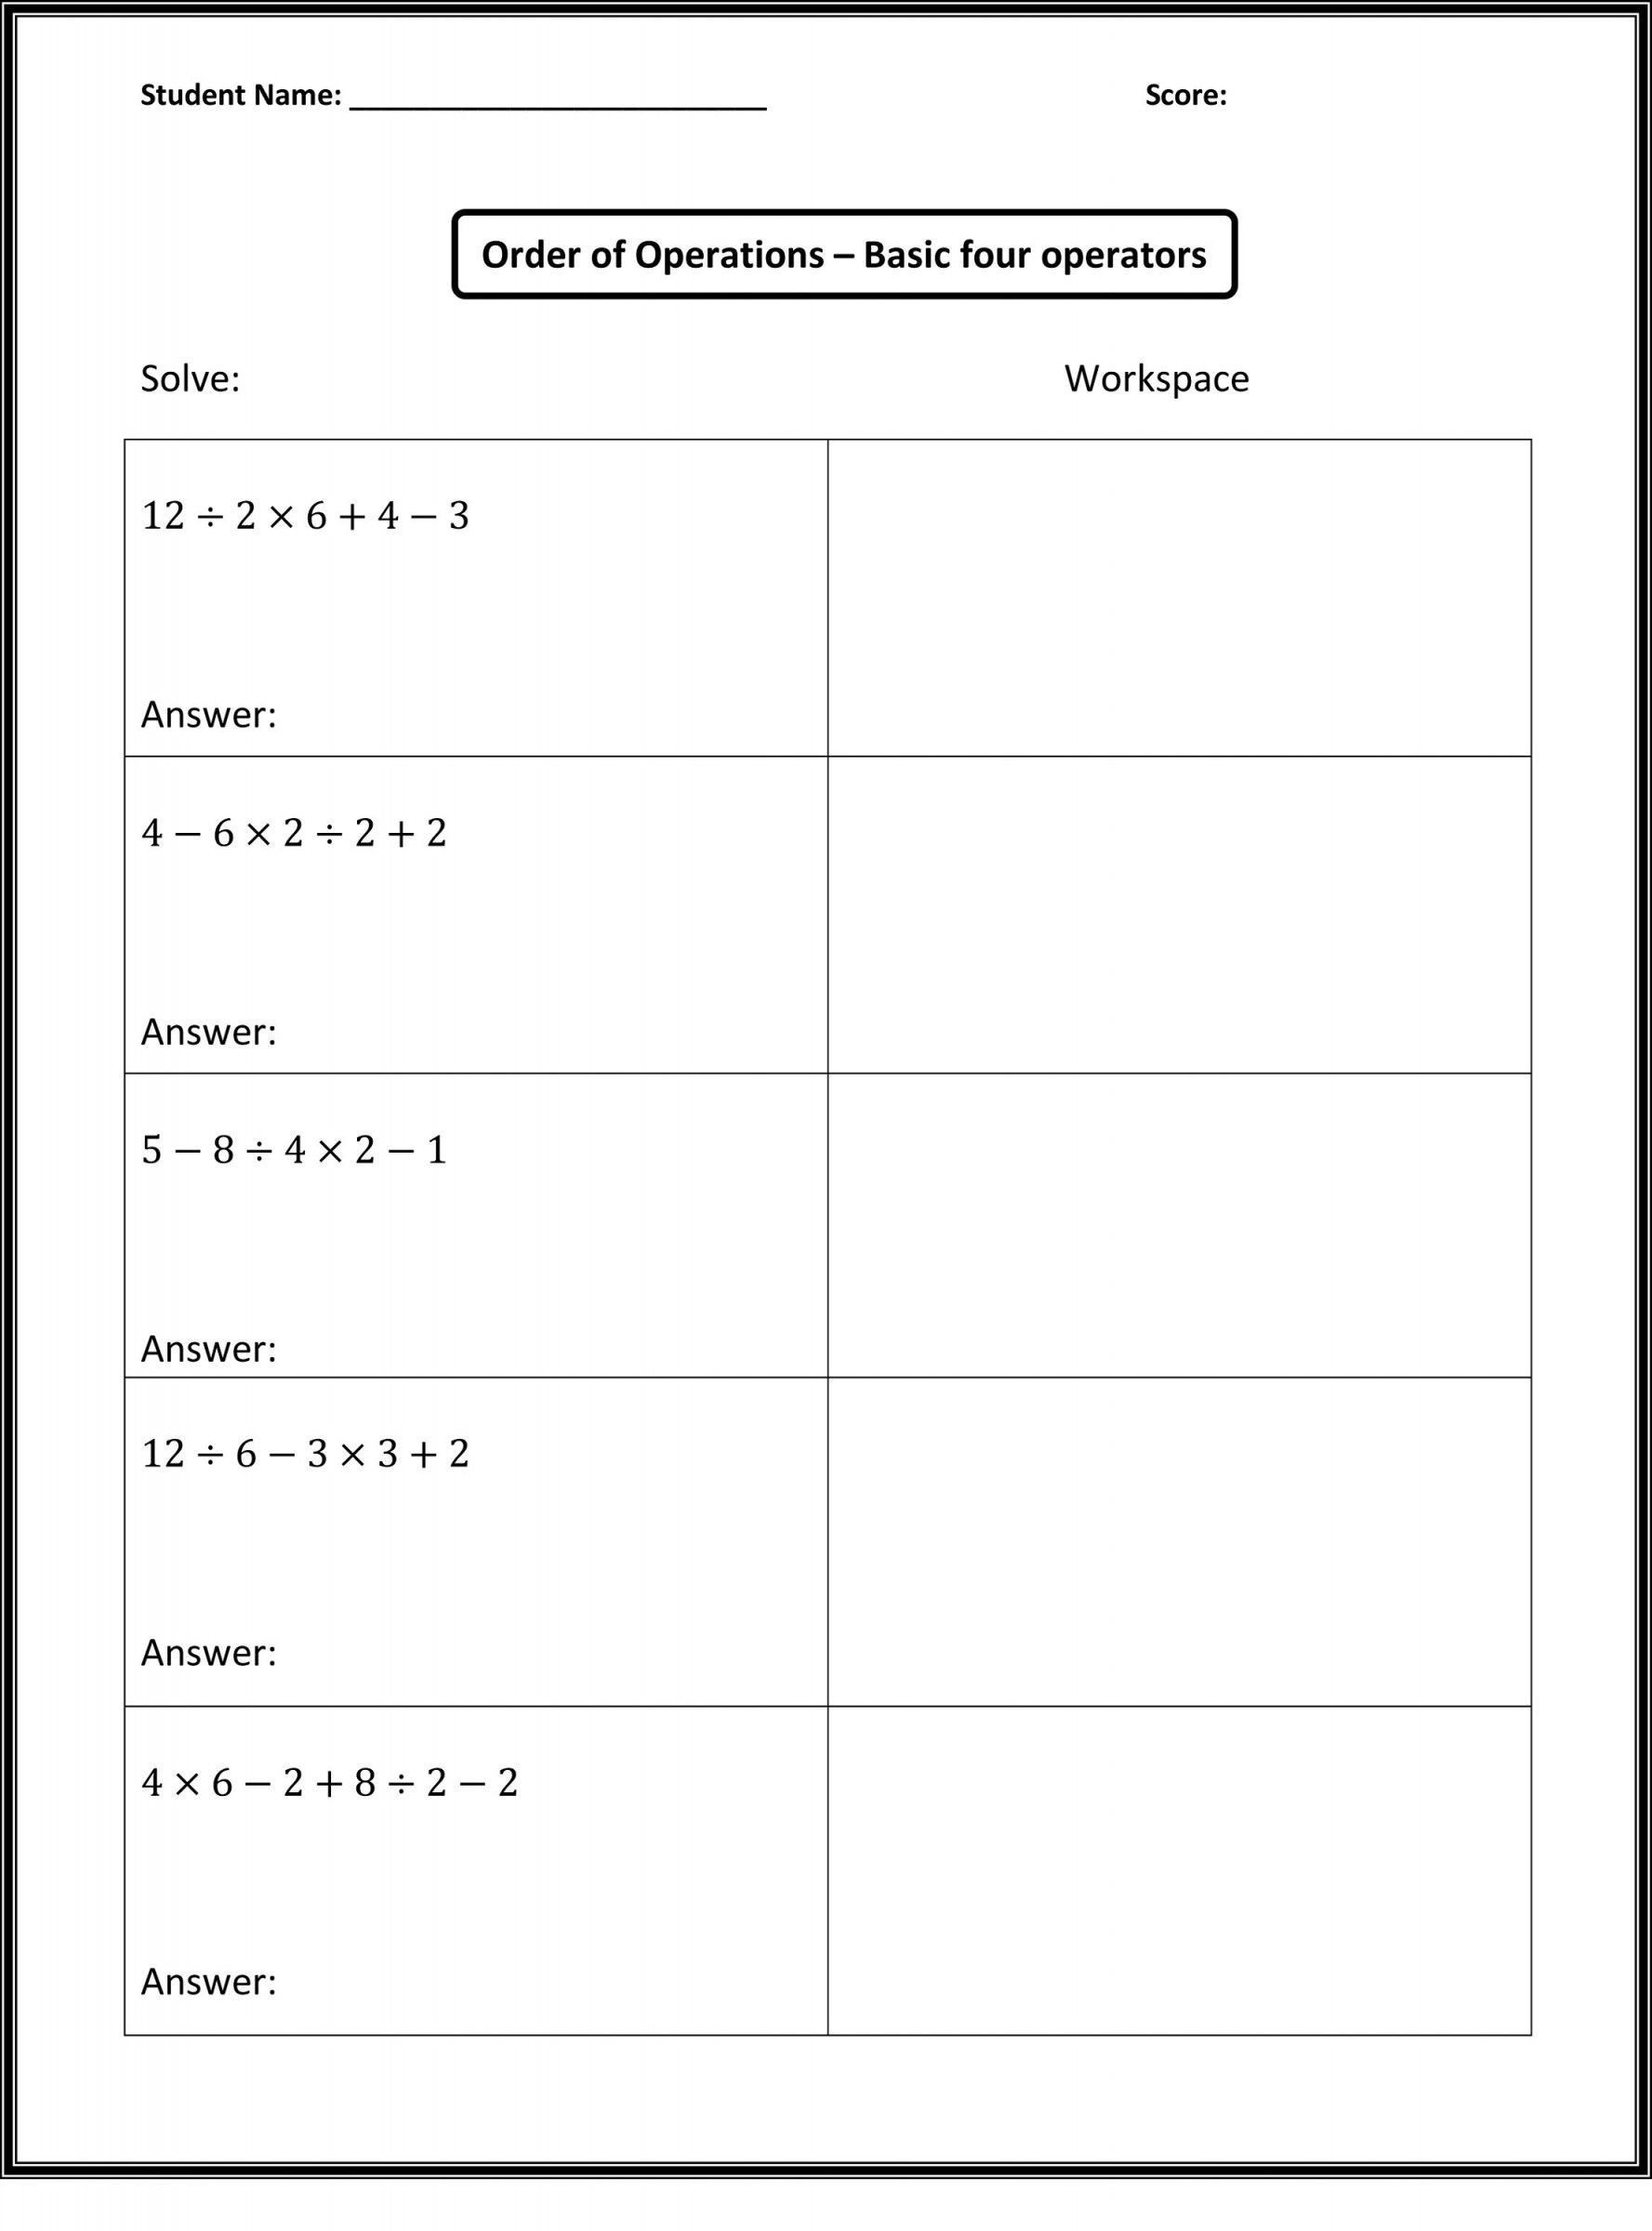 5th Grade Algebraic Expressions Worksheets 6th Grade Math Worksheets Printable with Answers